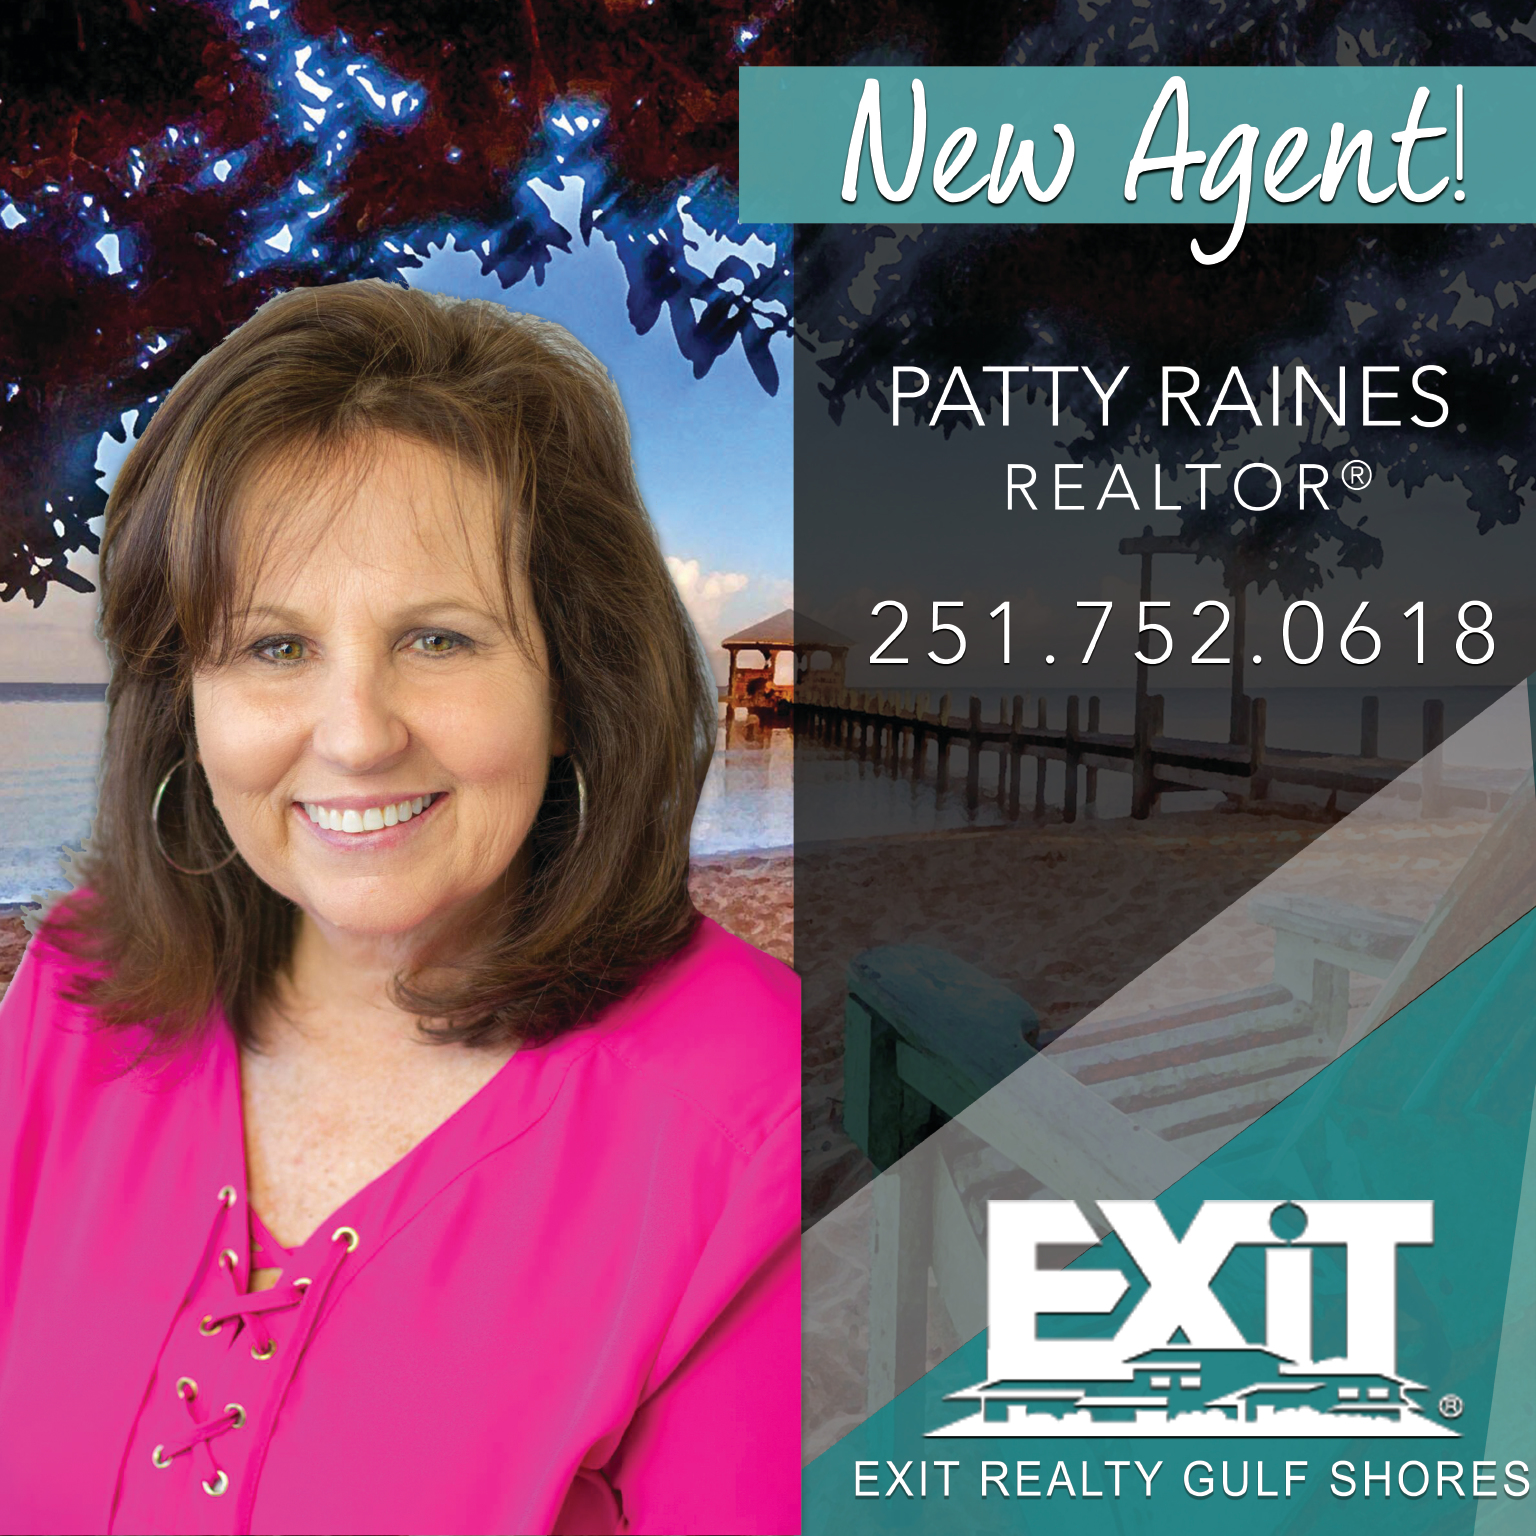 WELCOME PATTY RAINES